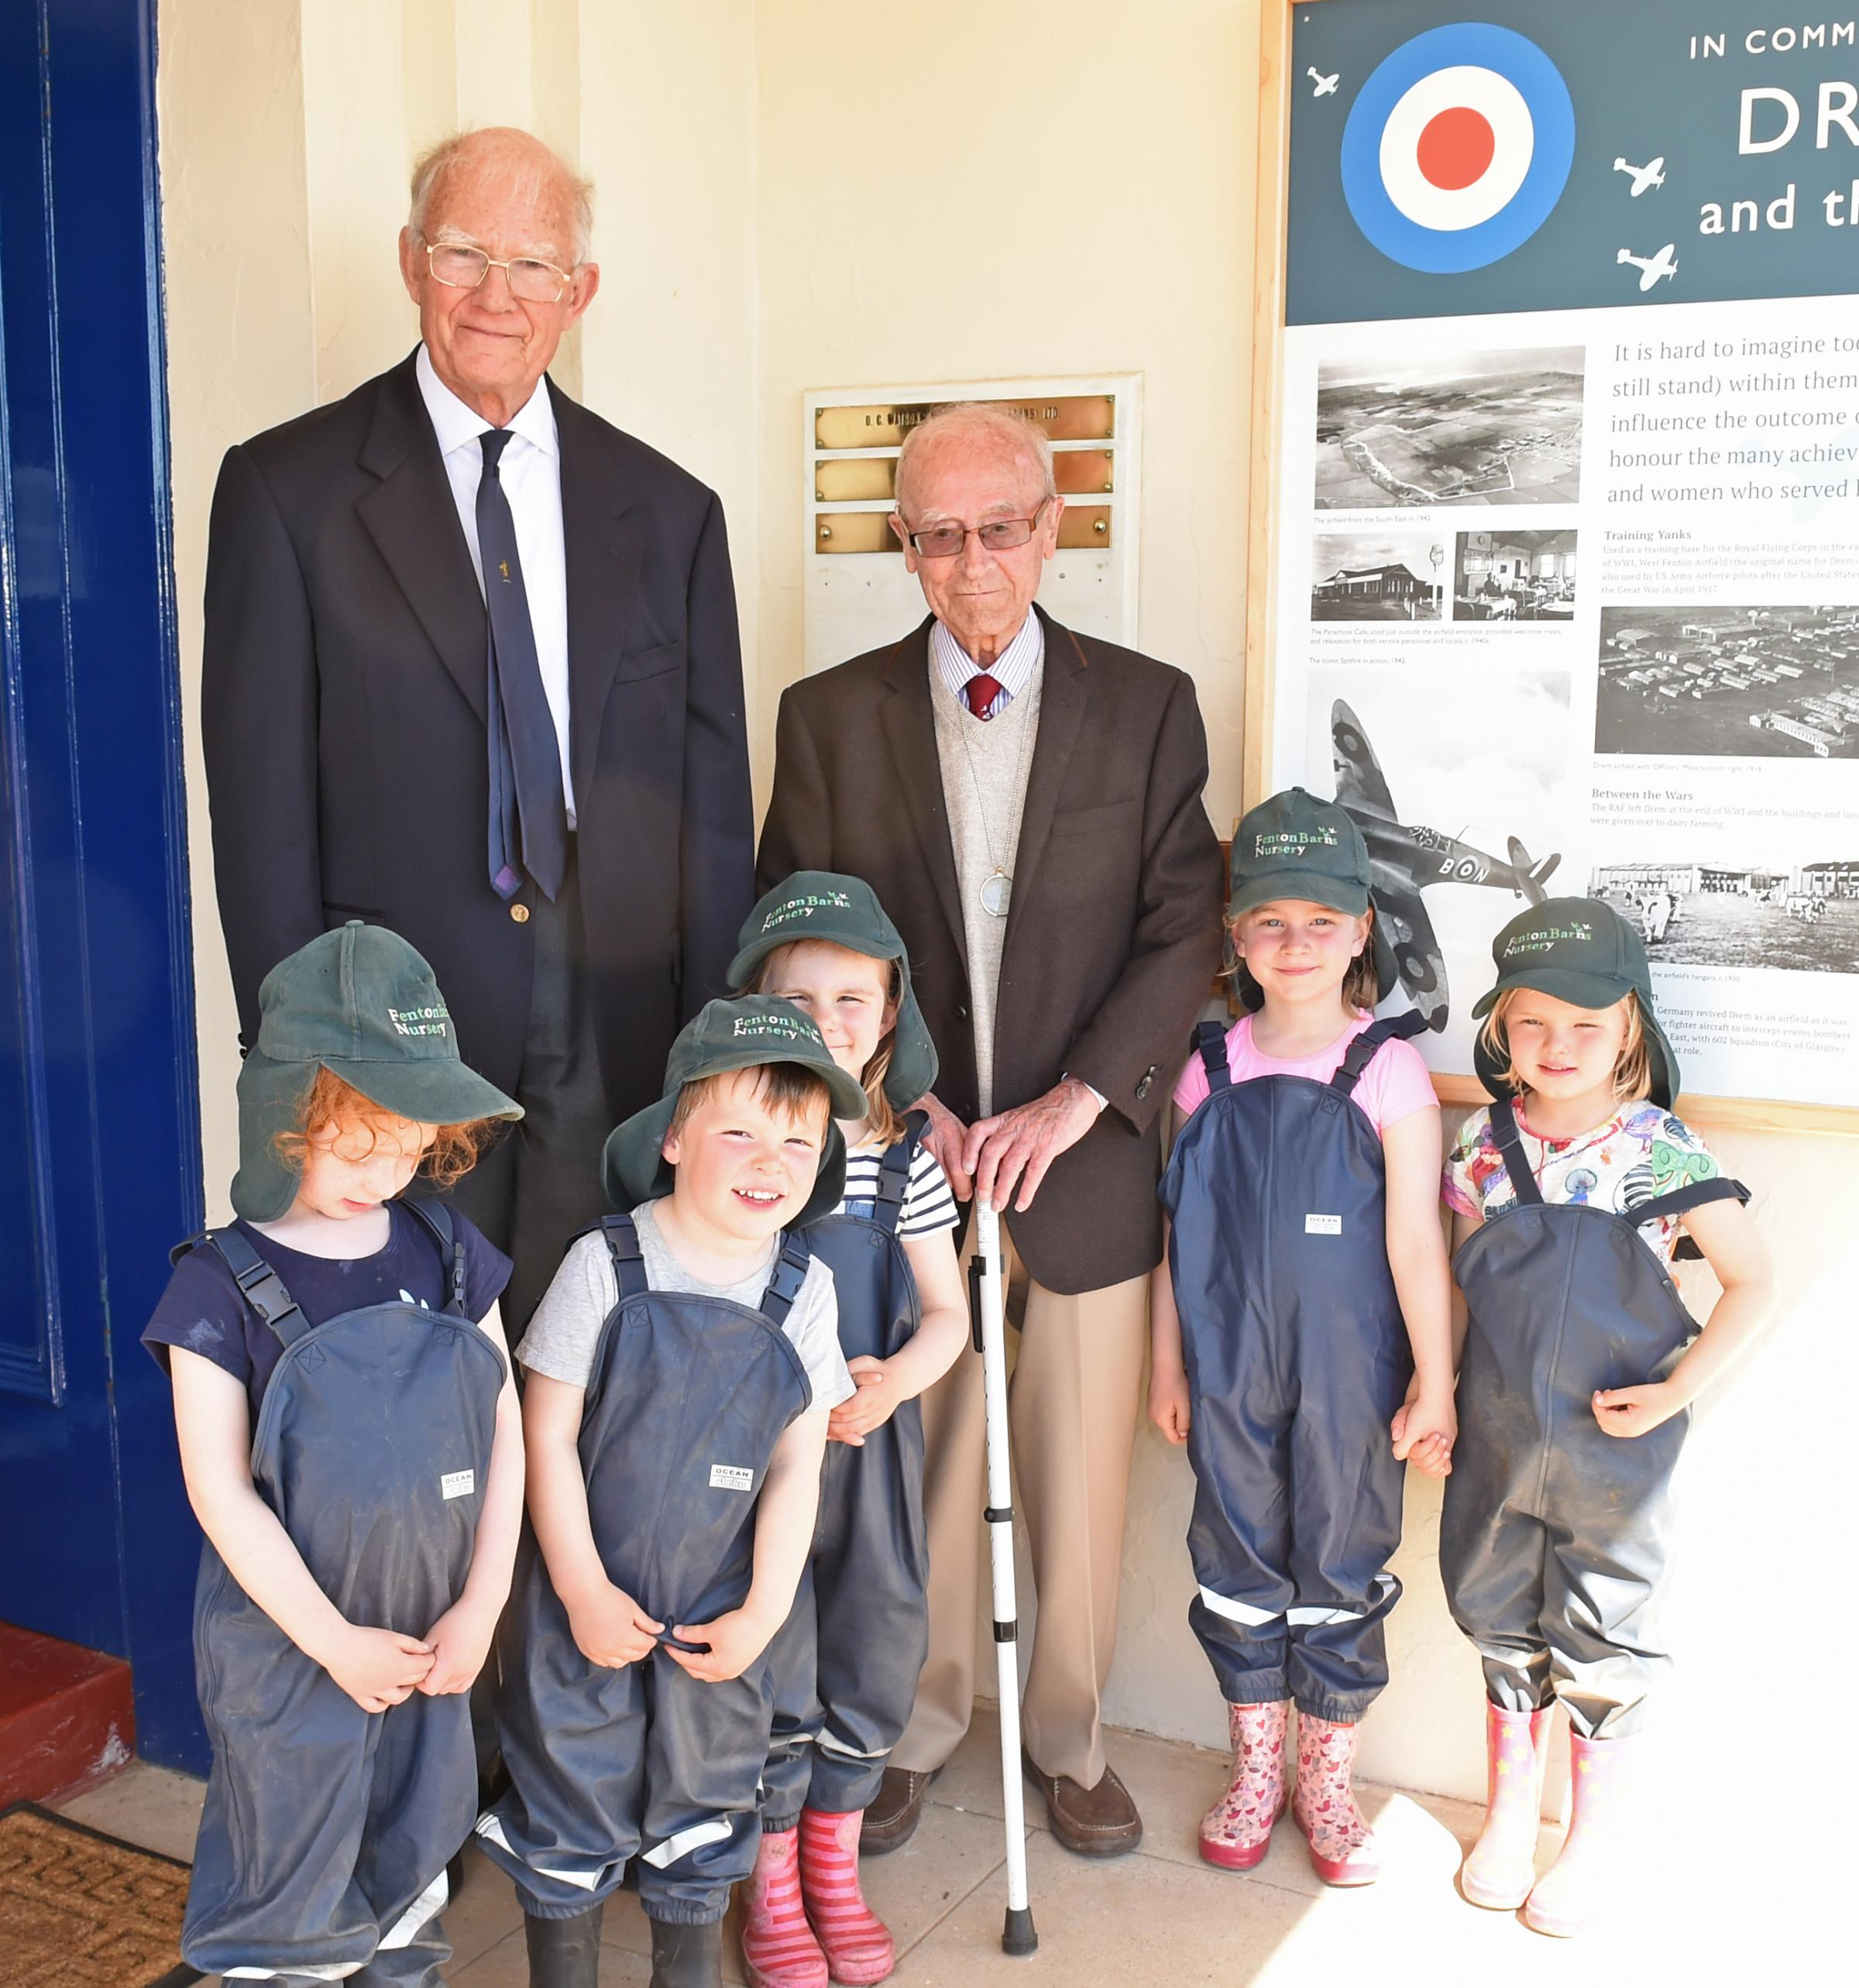 Youngsters from Fenton Barns Nursery were at the official unveiling of Drem Airfield board with veteran Gordon Mills and Michael Thomson, chairman of Gullane and Dirleton History Society